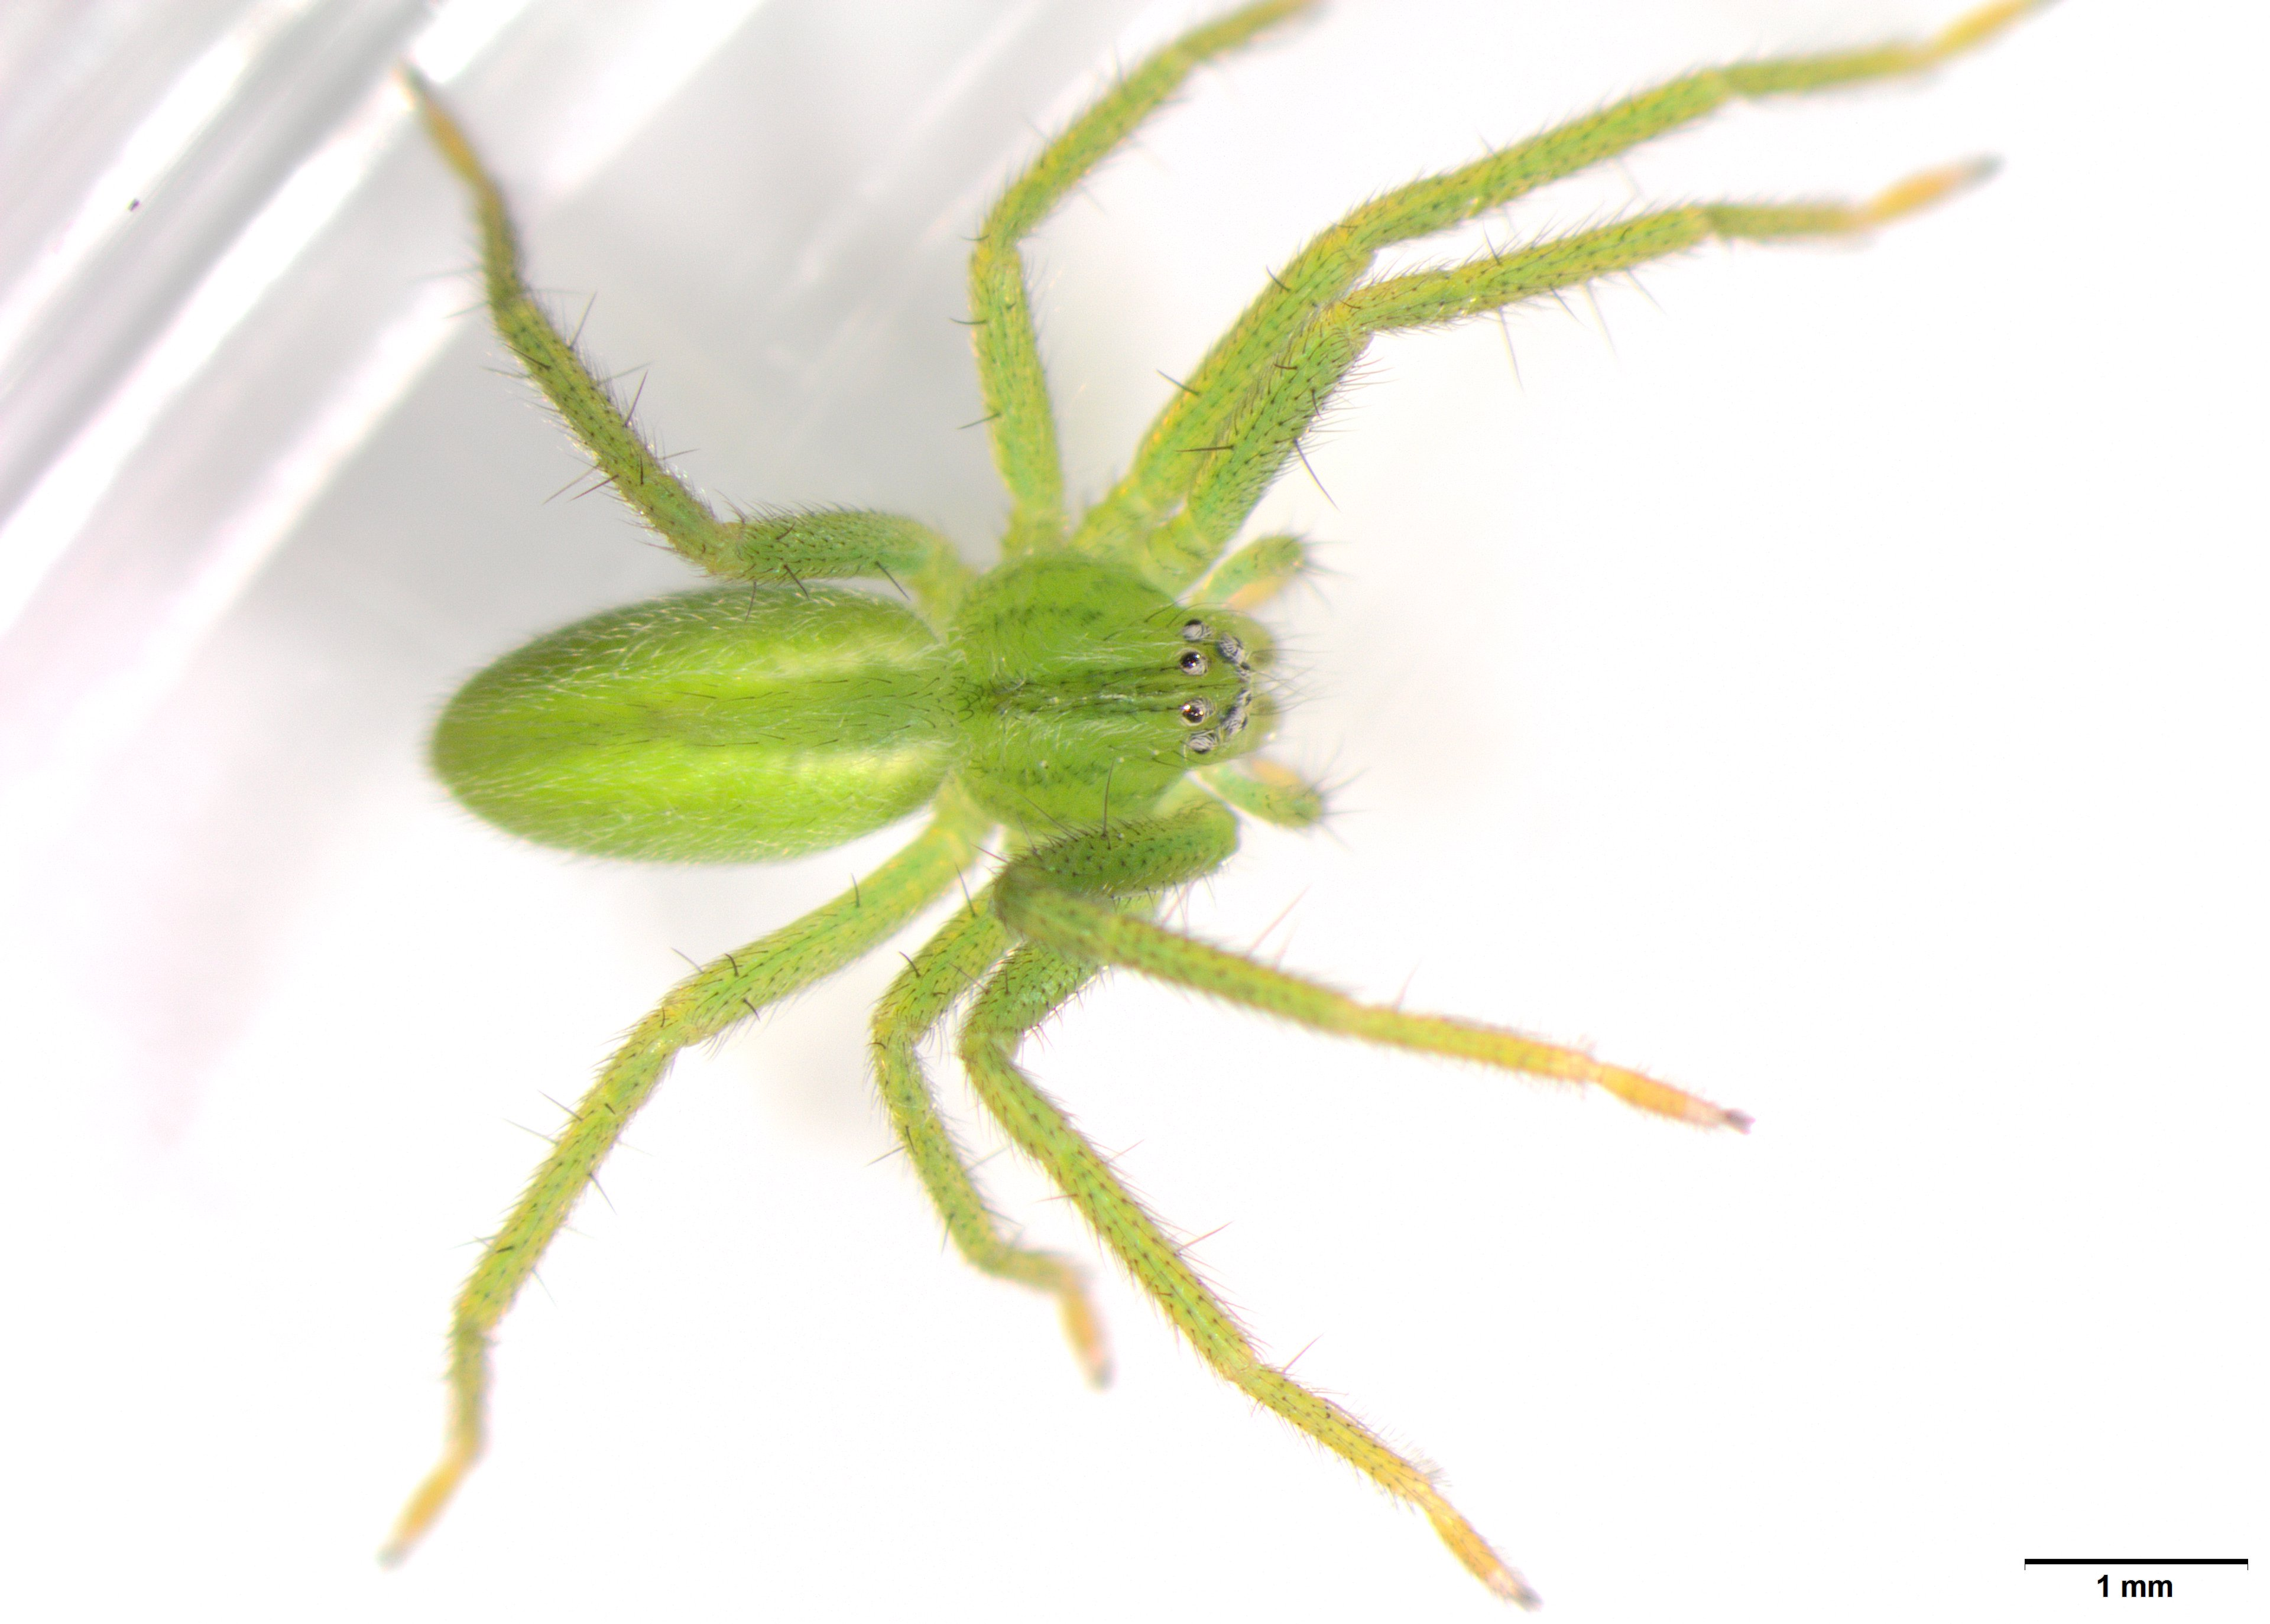 Picture of Micrommata virescens (Green Huntsman Spider) - Dorsal,Eyes